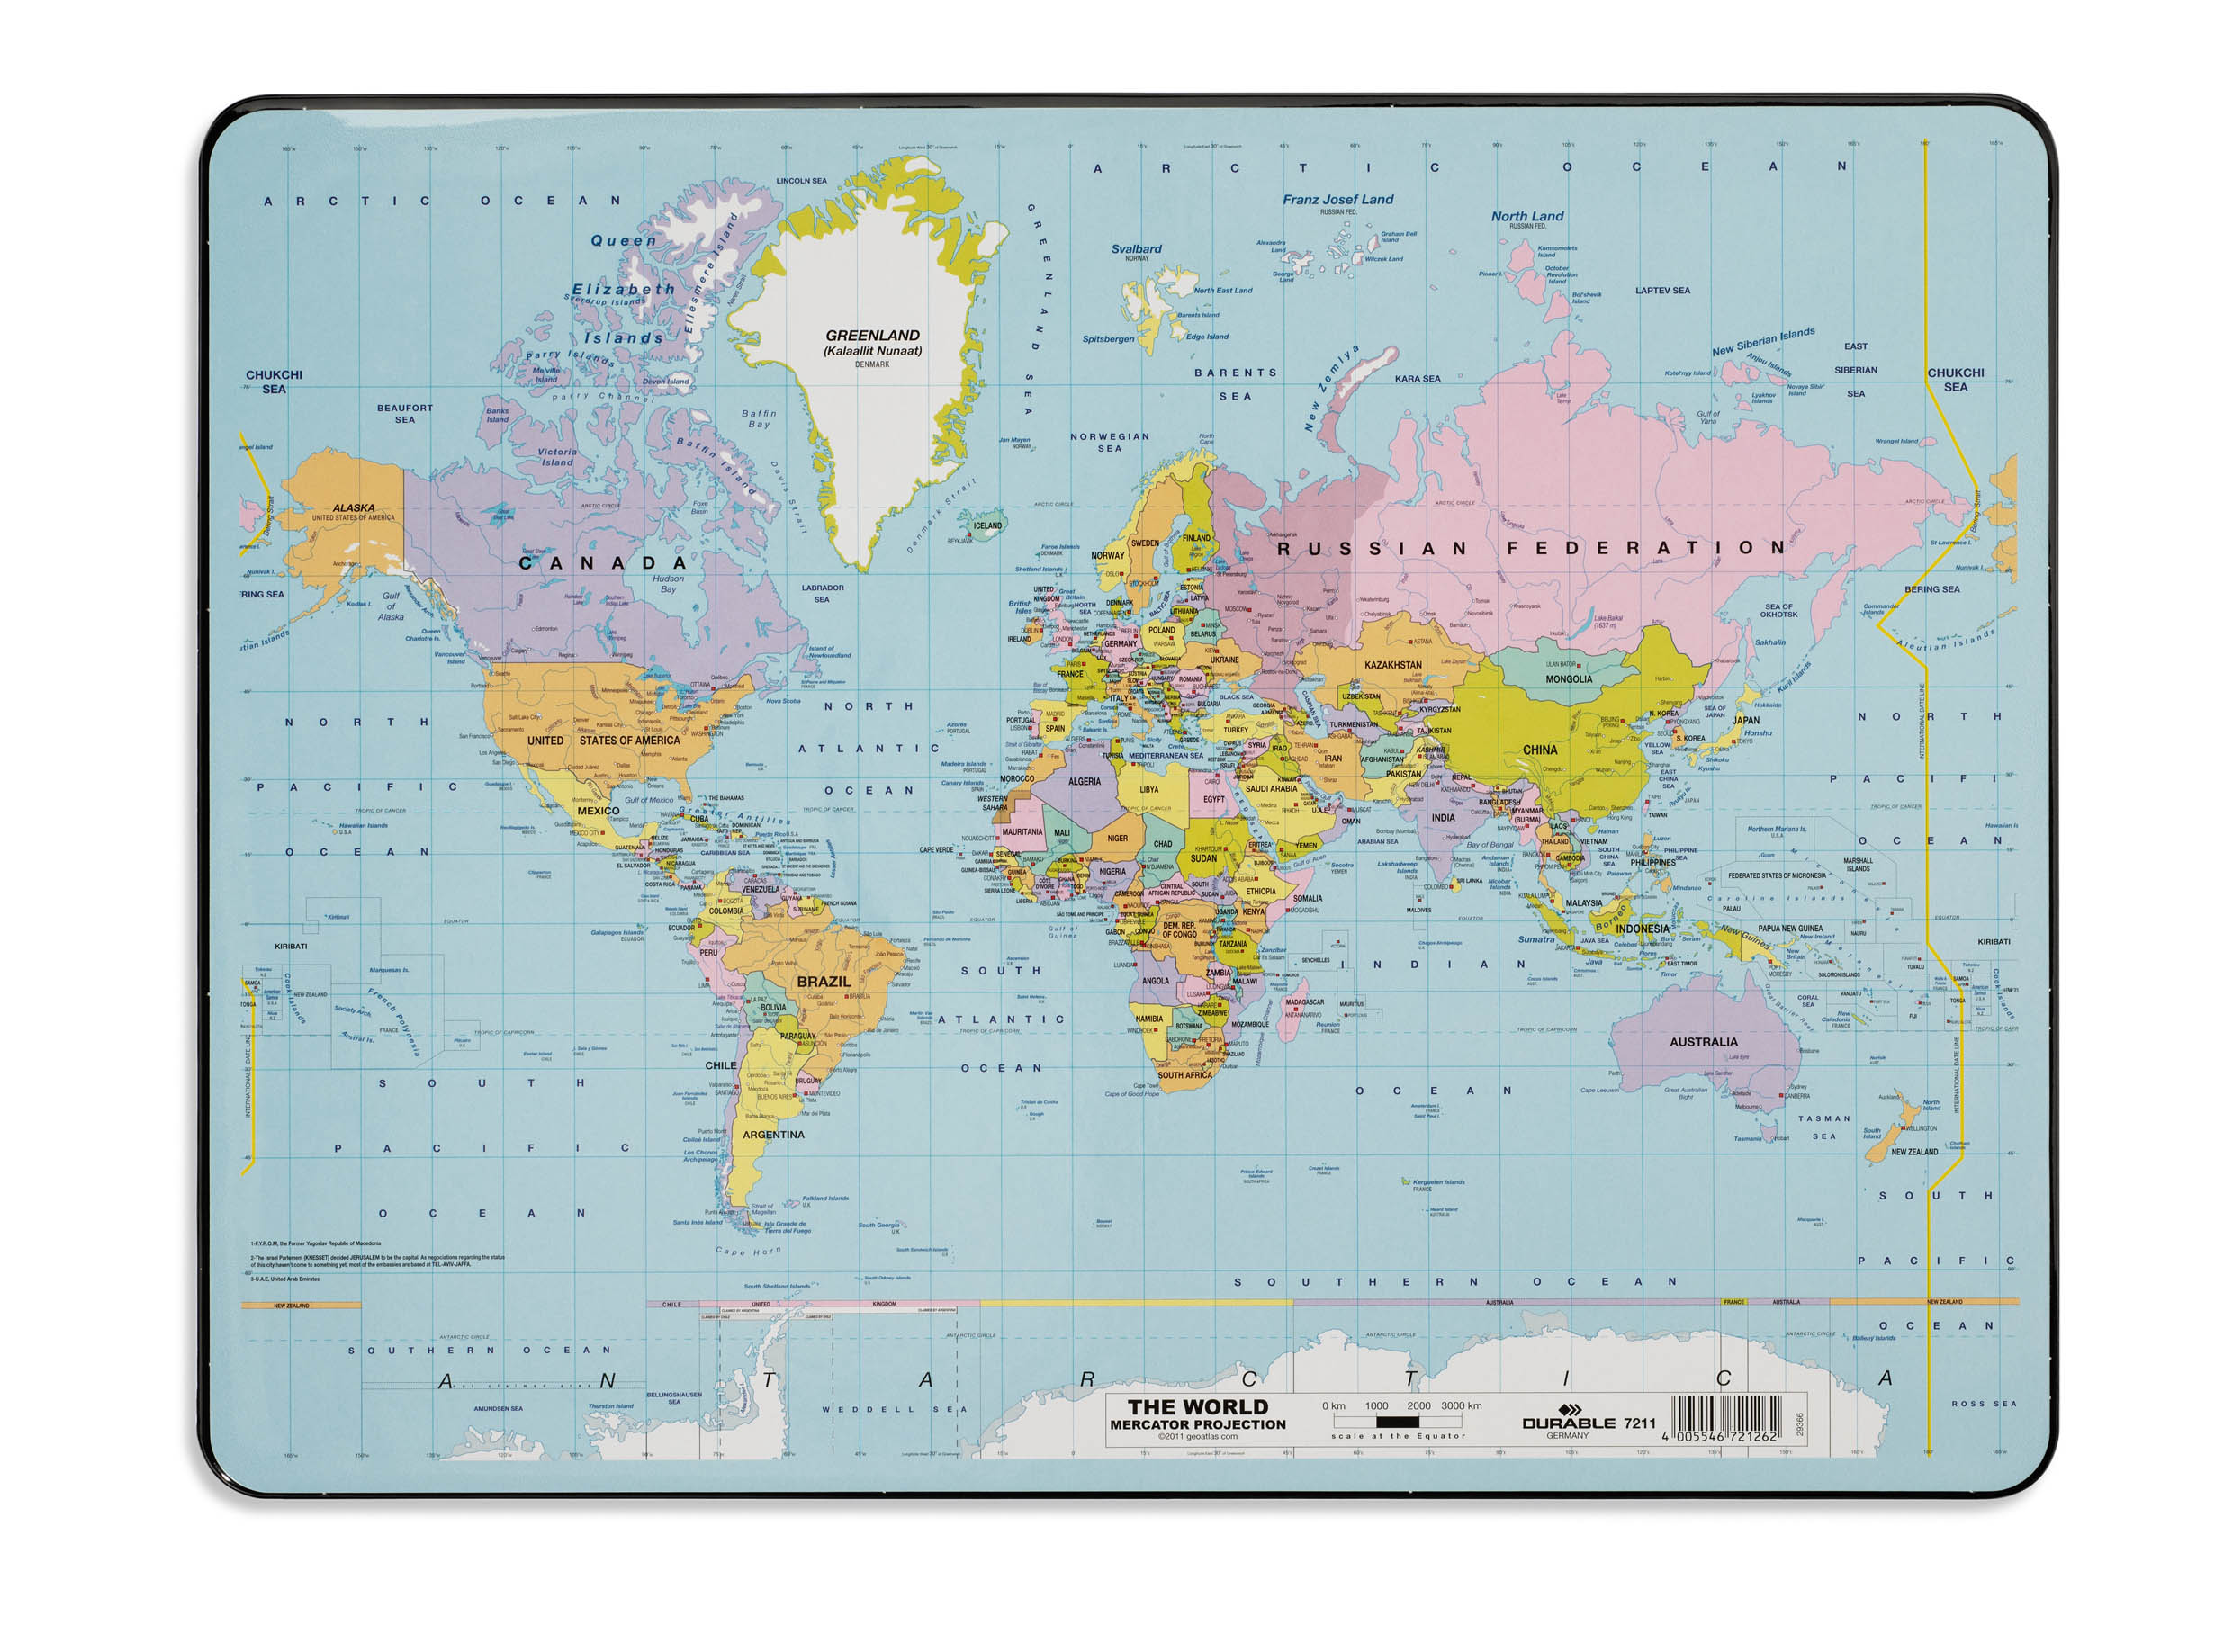 Durable World Map Desk Mat Pvc Non Slip Base W530xd400mm Ref 7211 19